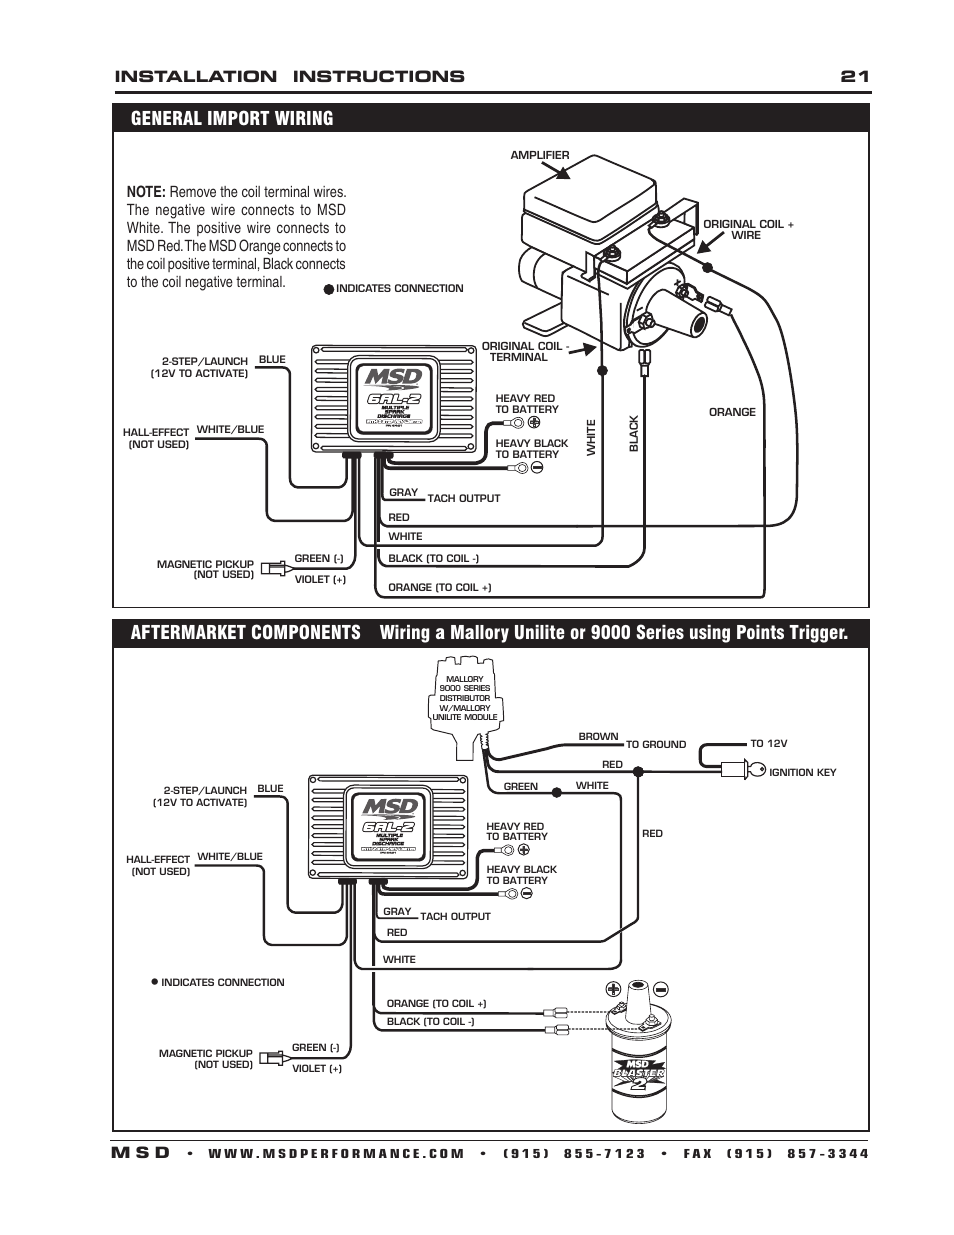 troubleshooting diagrams msd soft touch rev control wiring diagram  touch wiring diagram on led circuit diagrams,